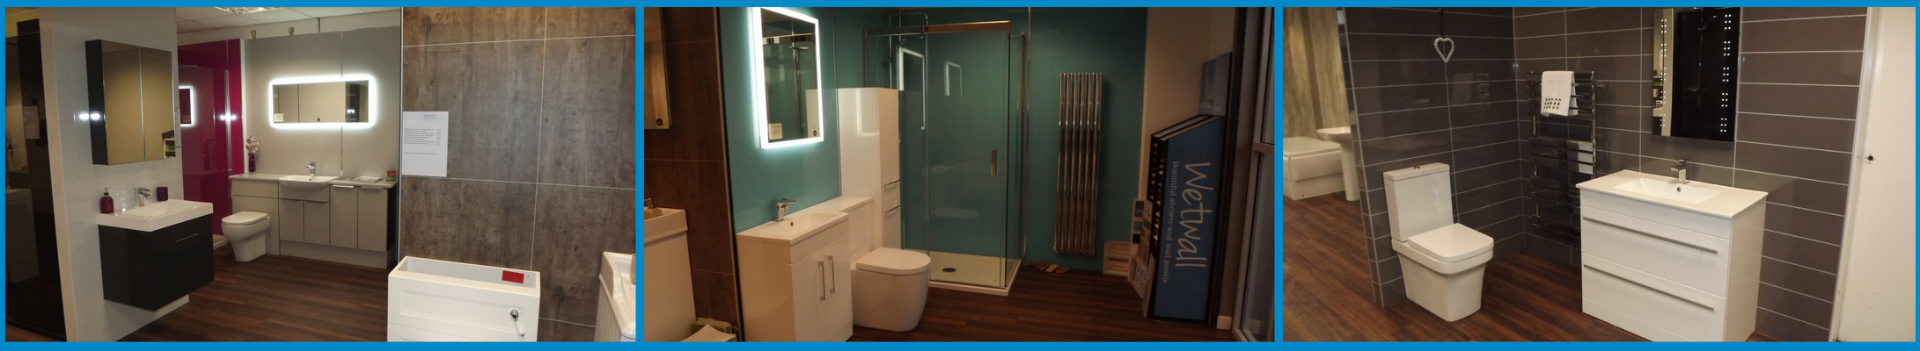 Plumbstore Dundee Bathroom Showroom Display